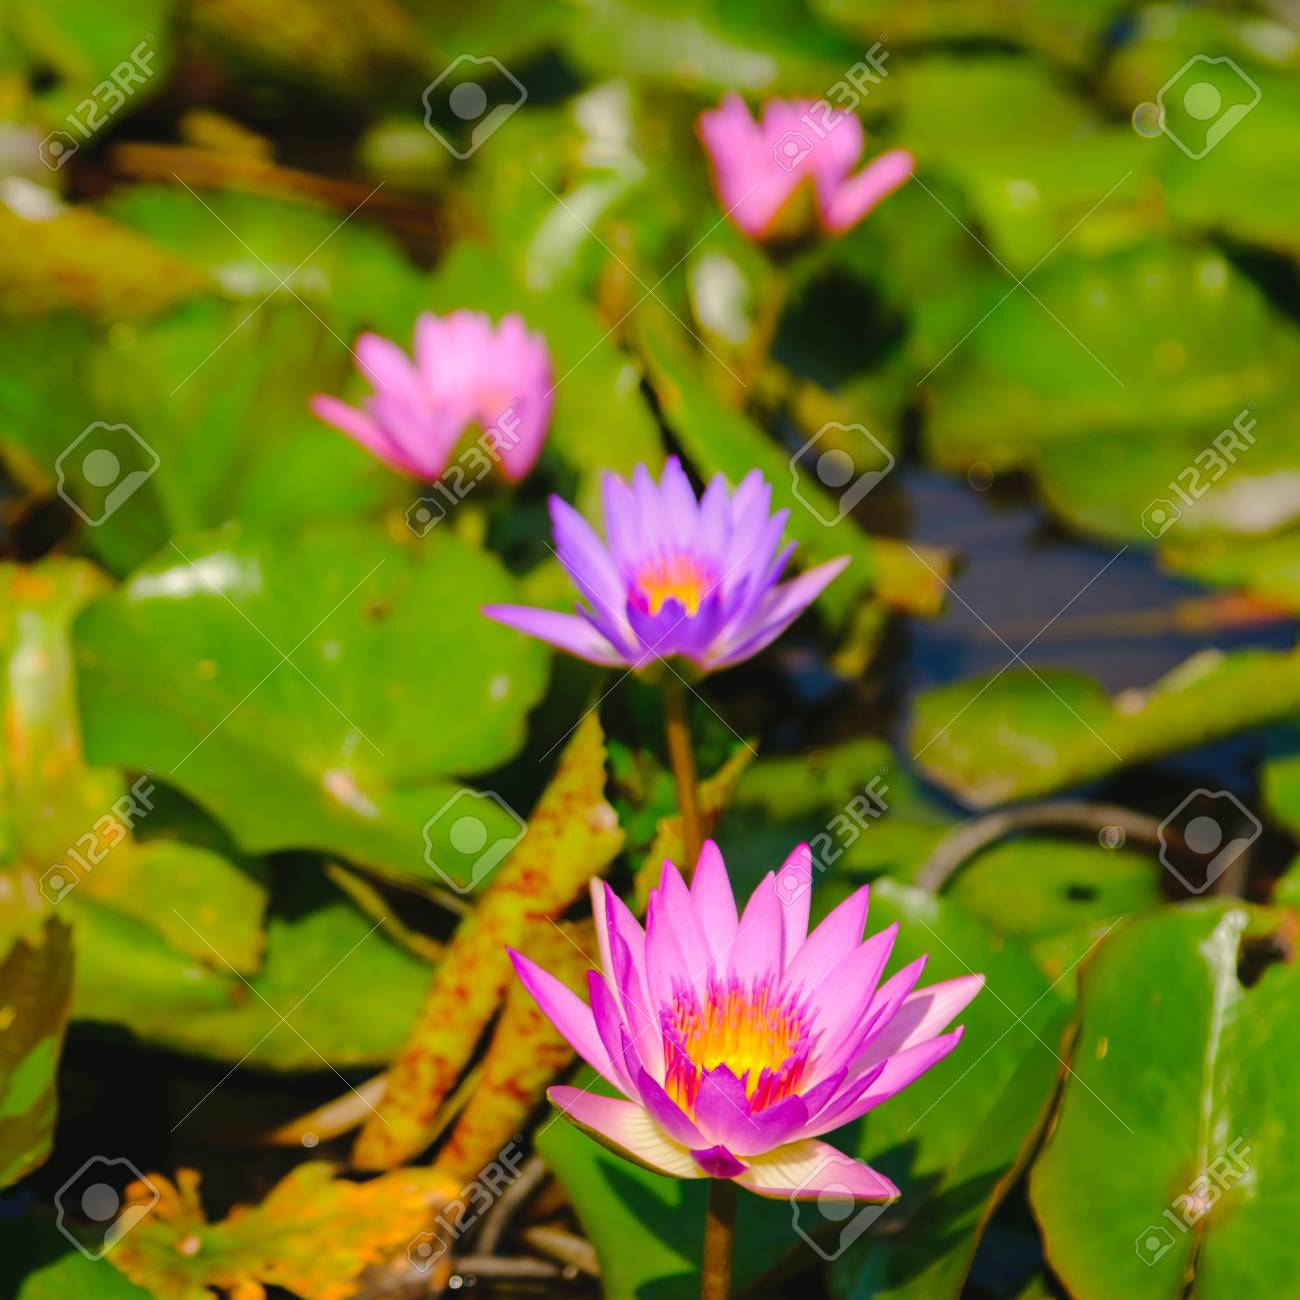 This beautiful pink water lily or lotus flower blooming on the stock photo this beautiful pink water lily or lotus flower blooming on the water in gardenthailand selective and soft focus with blurred background izmirmasajfo